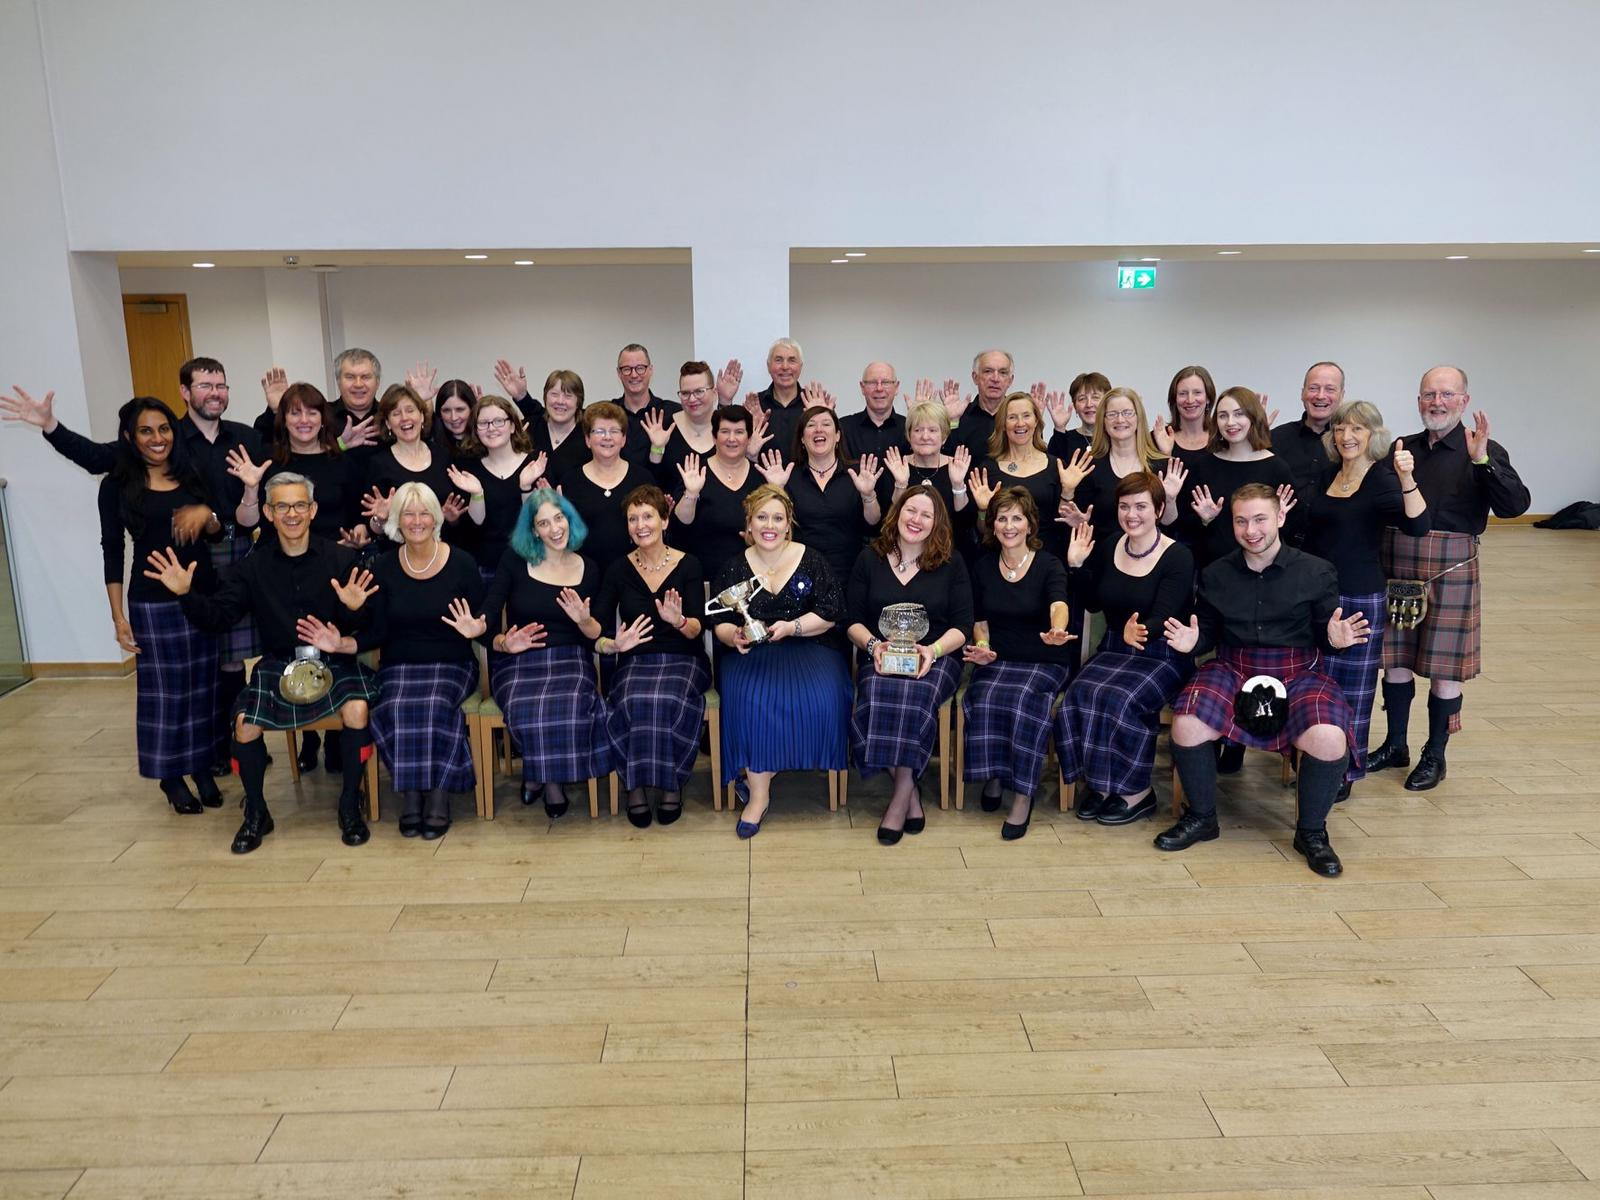 Members of Aberdeen Gaelic Choir